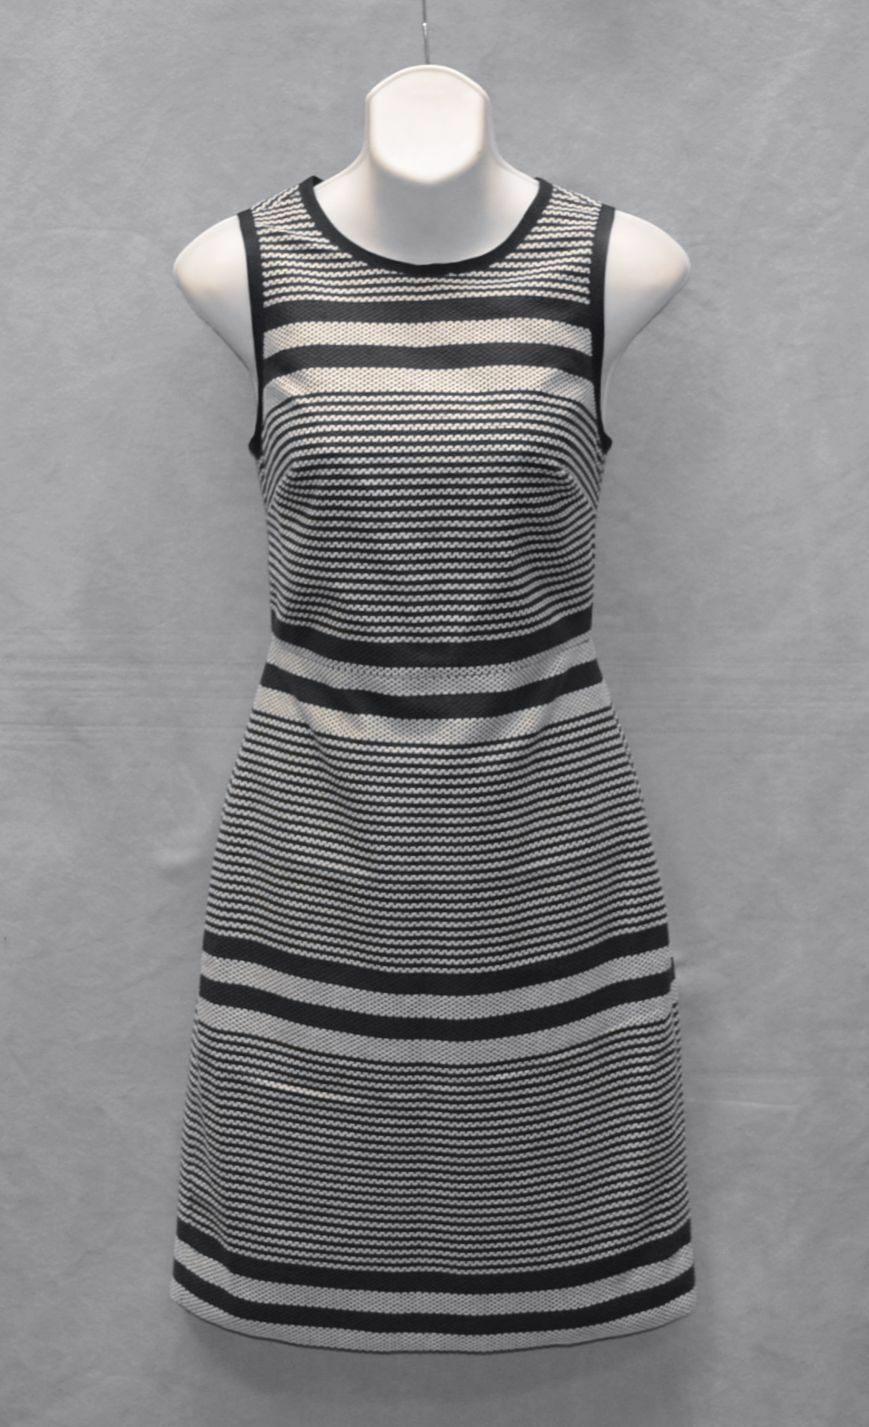 B0 NWT J CREW Indigo bluee & White Tweed Striped Sneath Dress G2448 Size 2